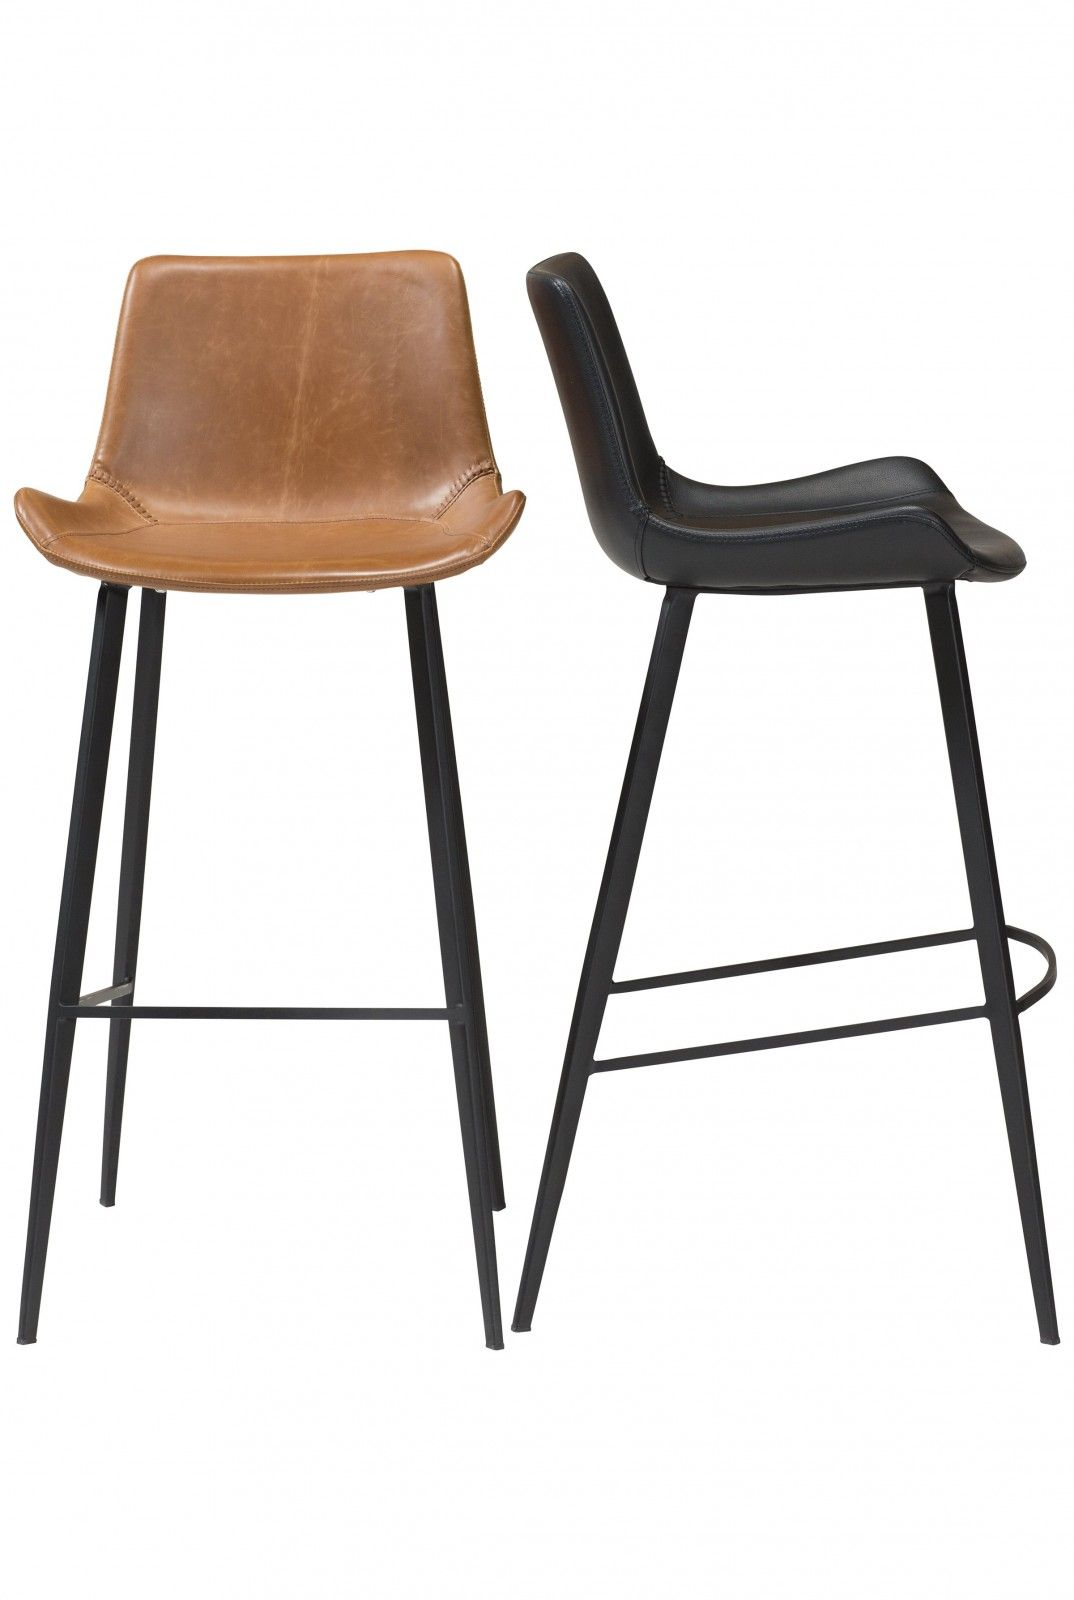 Buy bar stools from DAN-FORM Denmark and get exclusive Danish design in top quality.  sc 1 st  Pinterest & Barhocker Hype | interiors :: NIGHTCLUBS | Pinterest | Bar chairs ... islam-shia.org